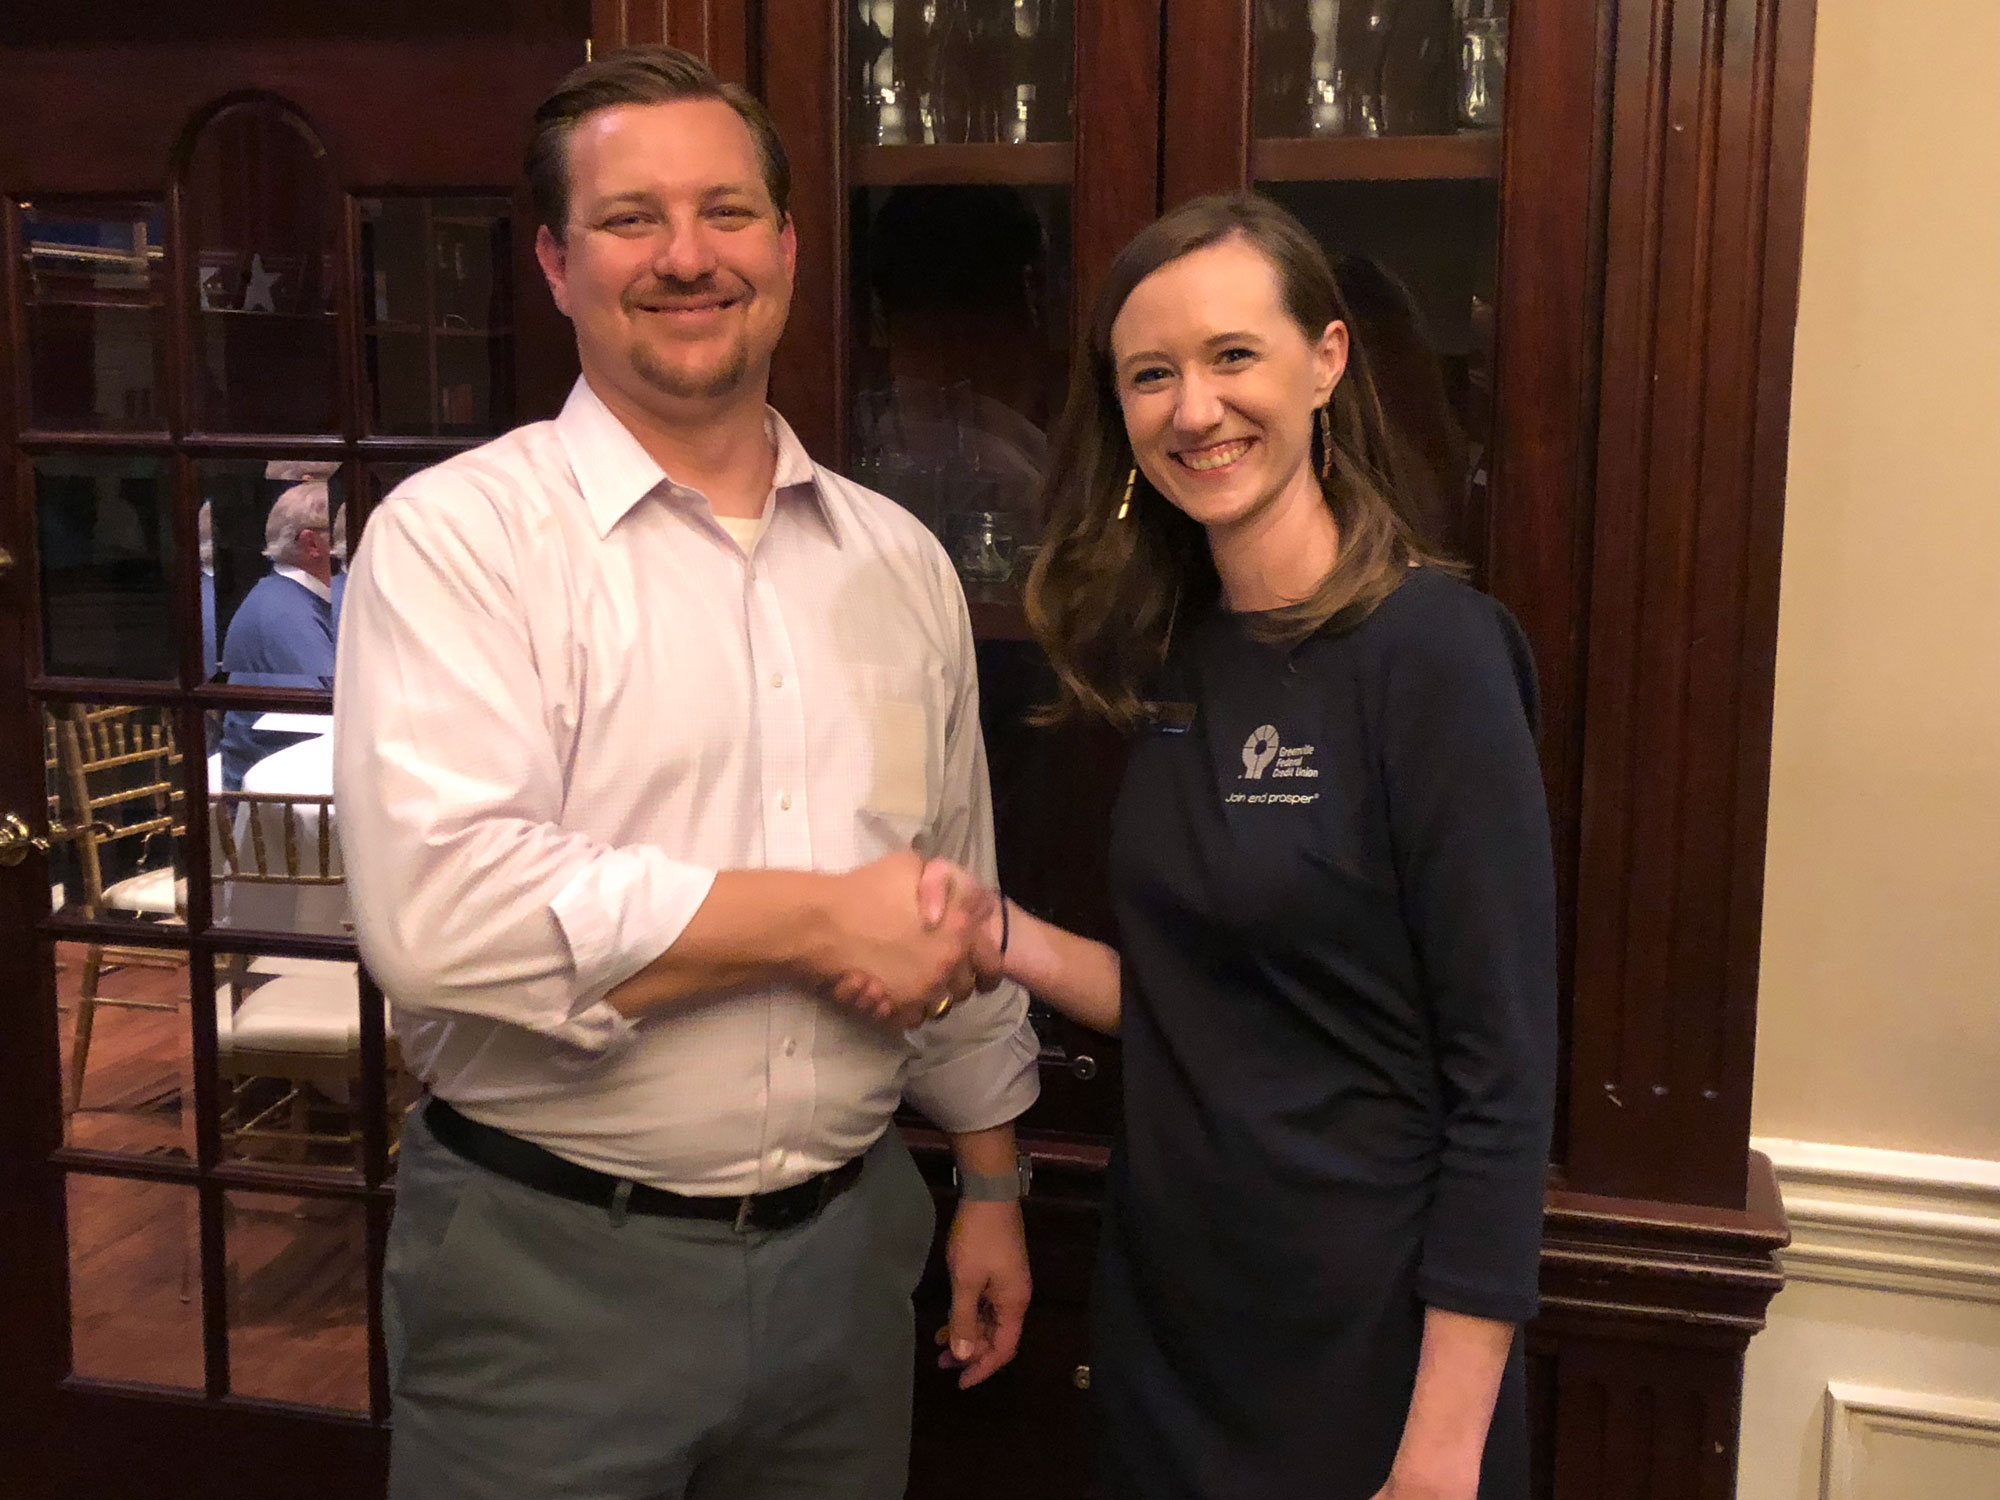 Upstate Chapter President Brian McKay congratulates Meaghan King